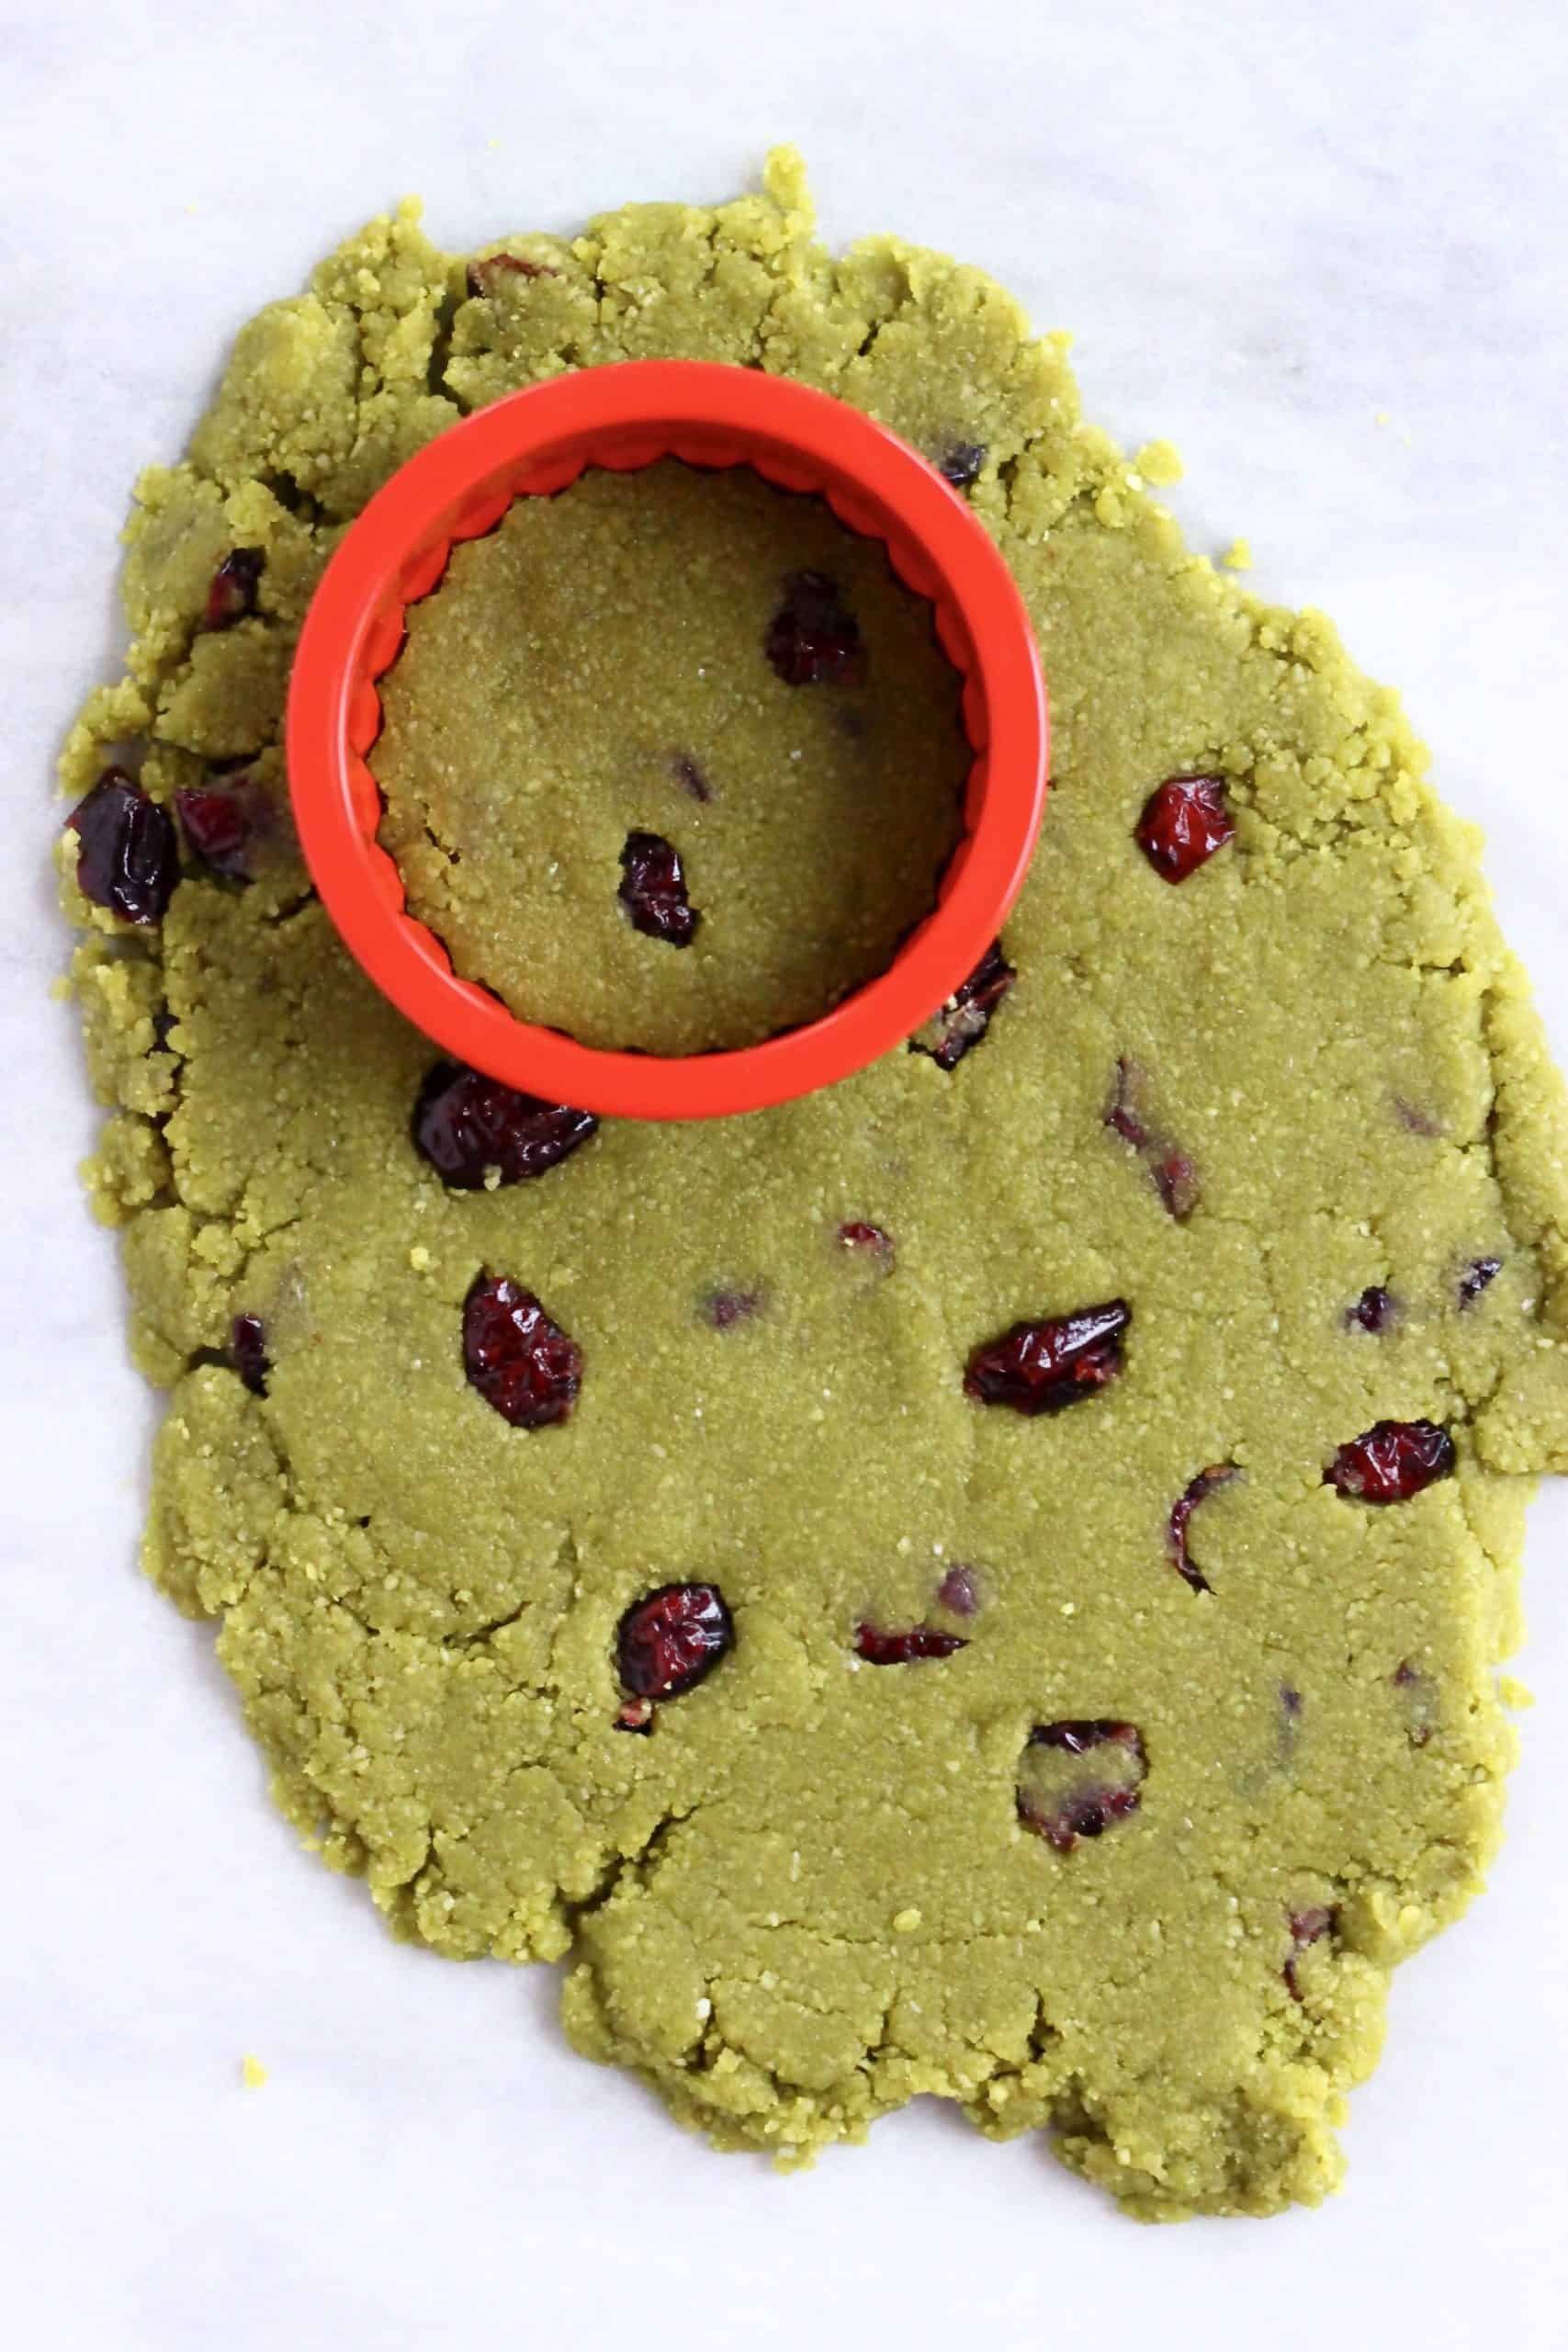 Raw vegan matcha shortbread cookie dough with dried cranberries rolled out on a baking sheet with a round cookie cutter on it